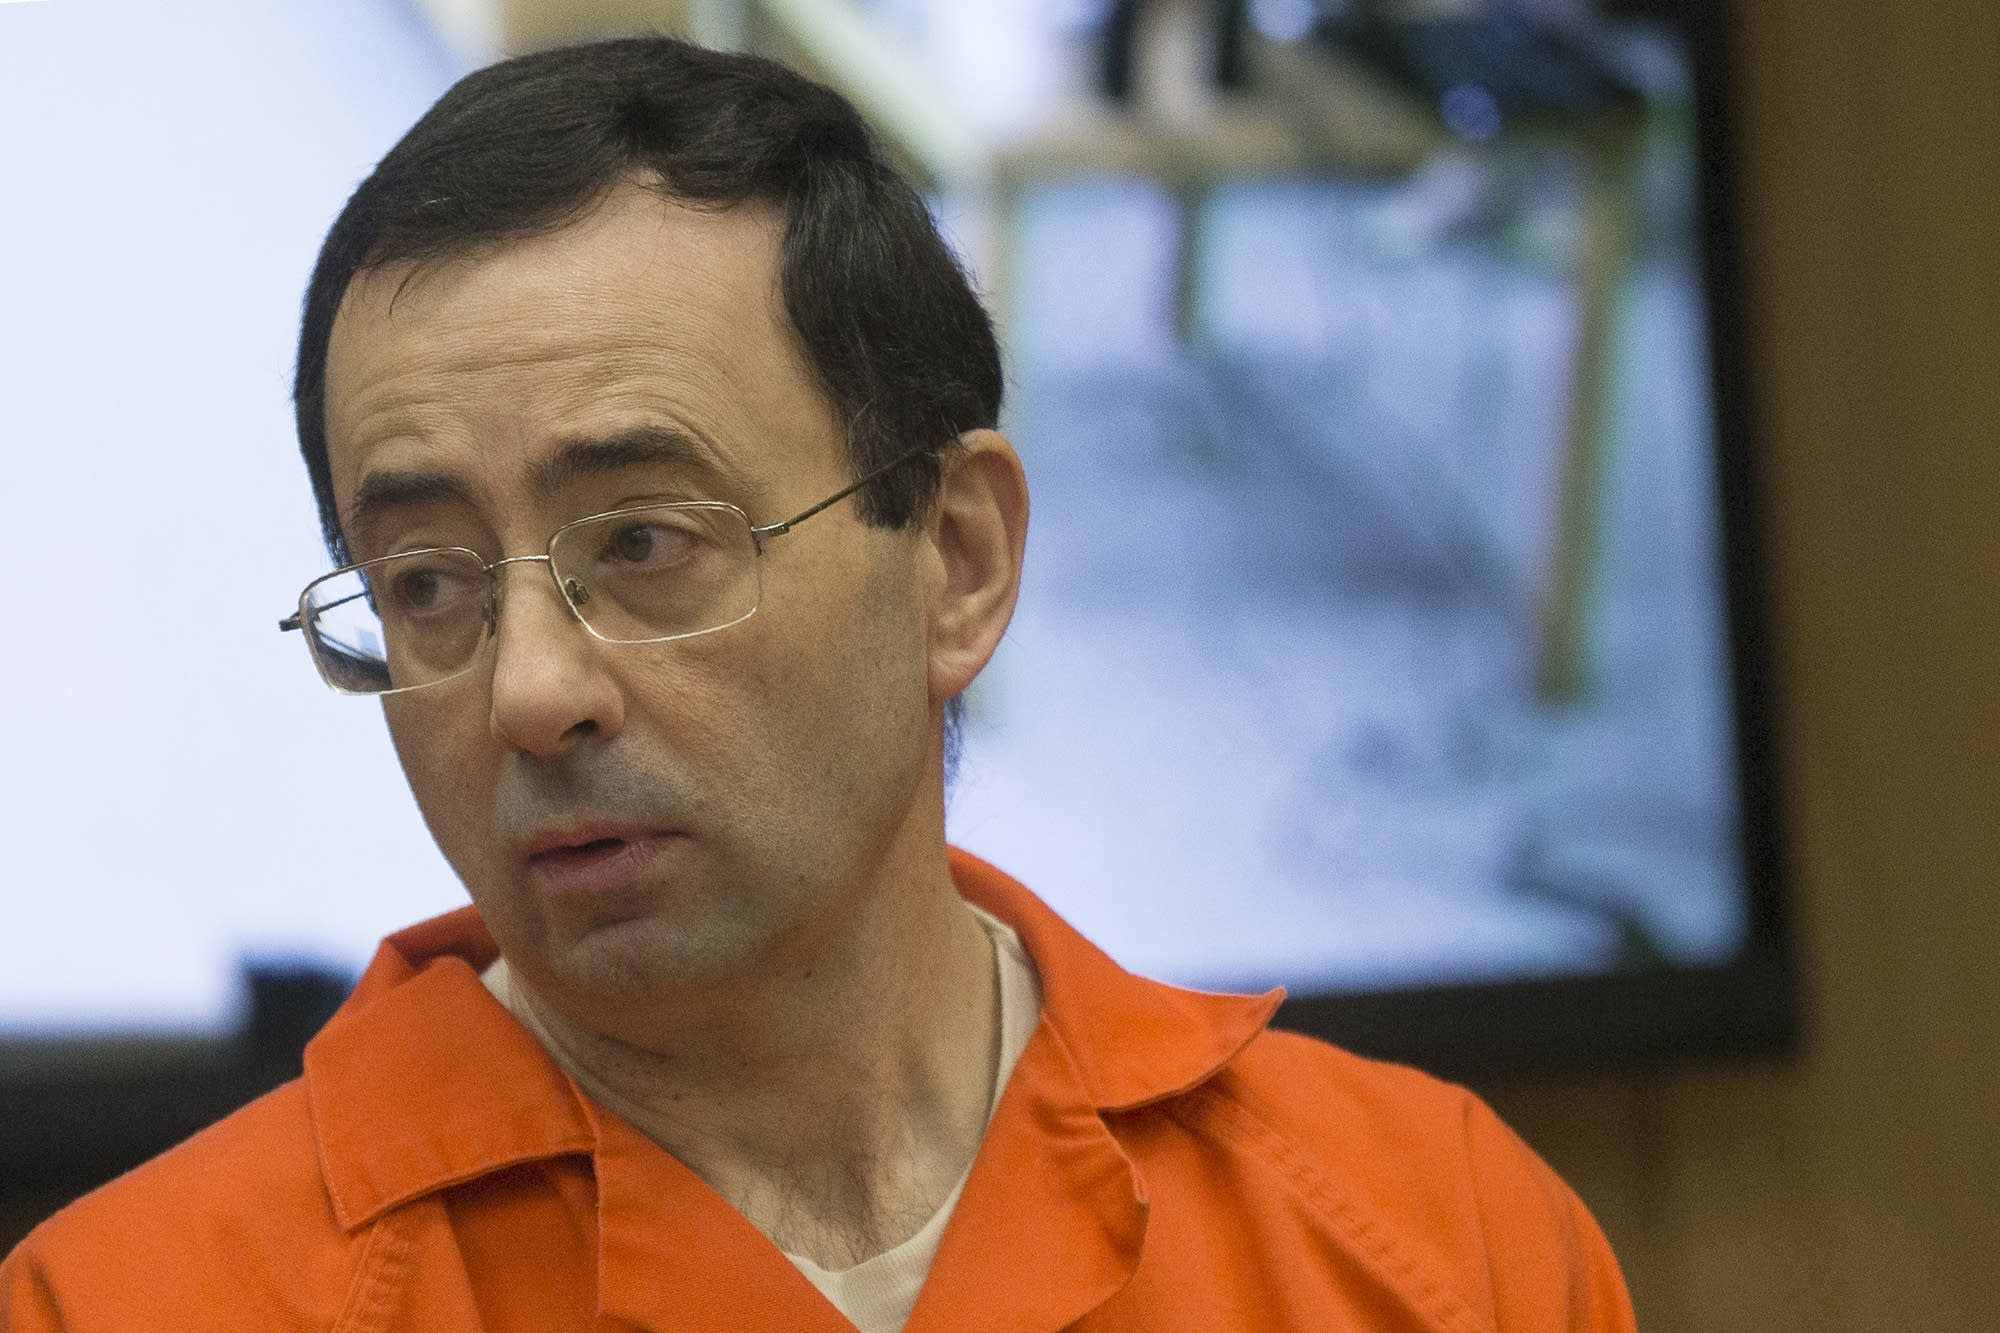 Larry Nassar appears in court for his final sentencing phase.